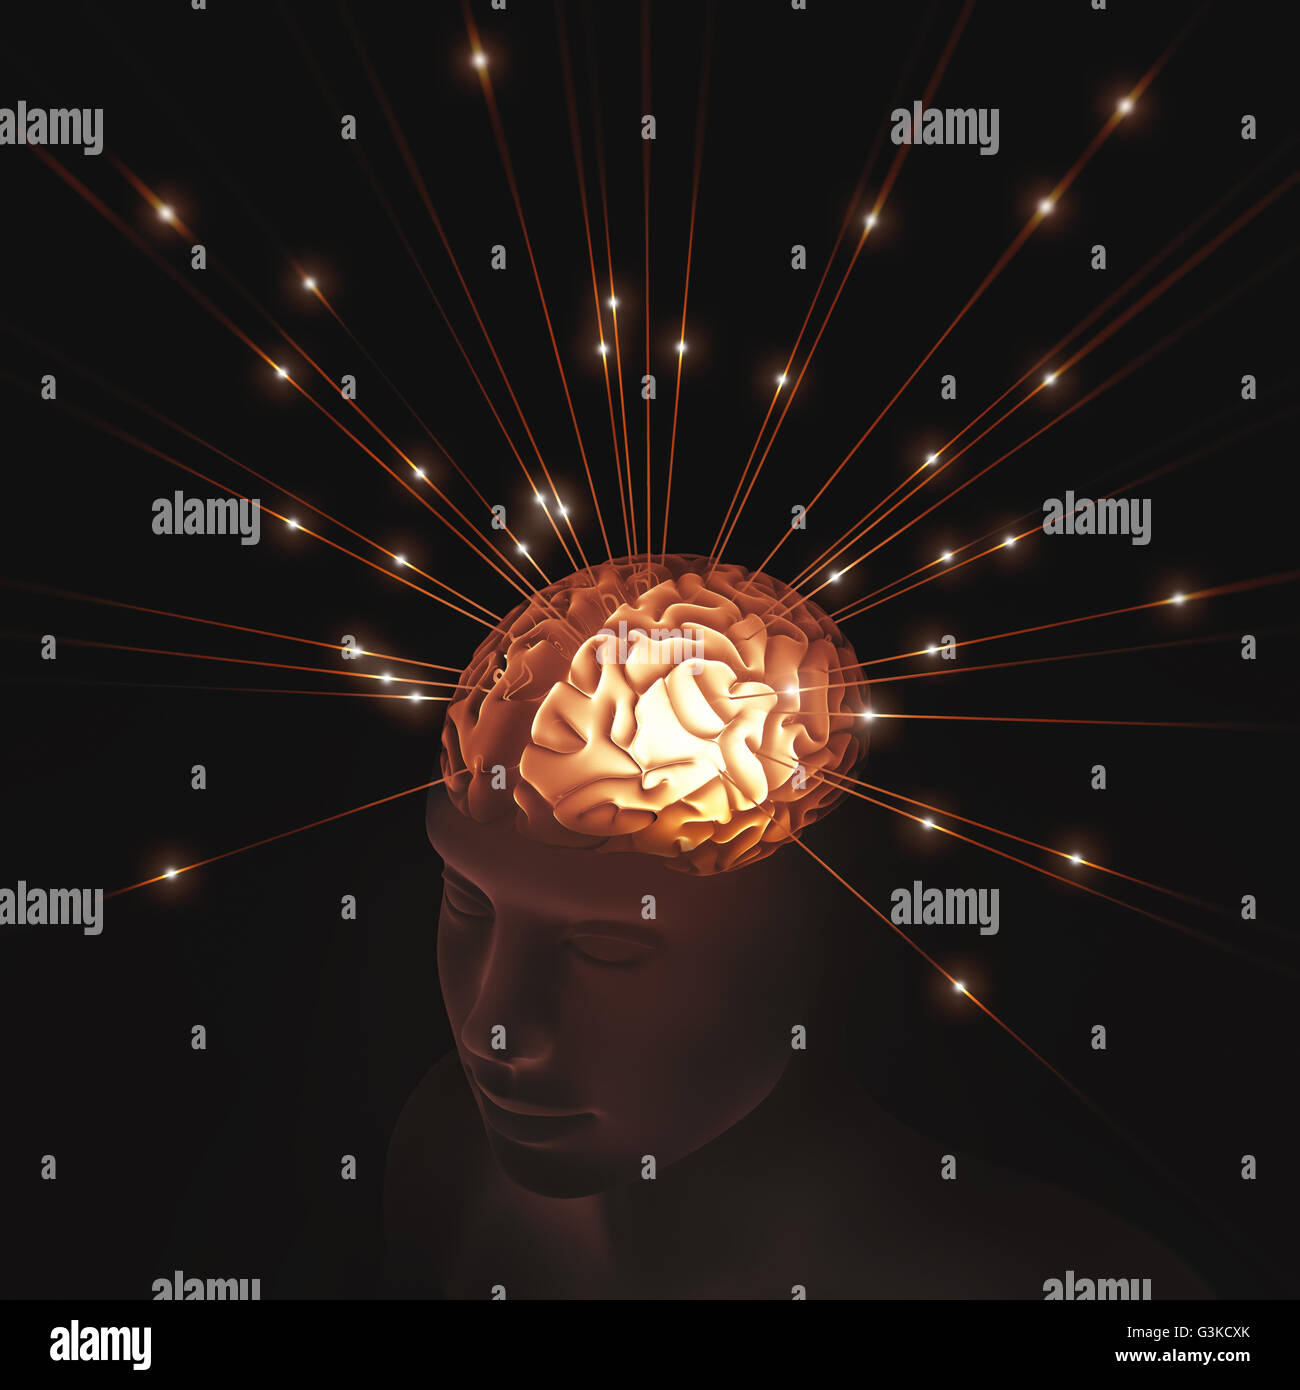 Human head translucent illuminated by pulses of energy entering the brain. - Stock Image